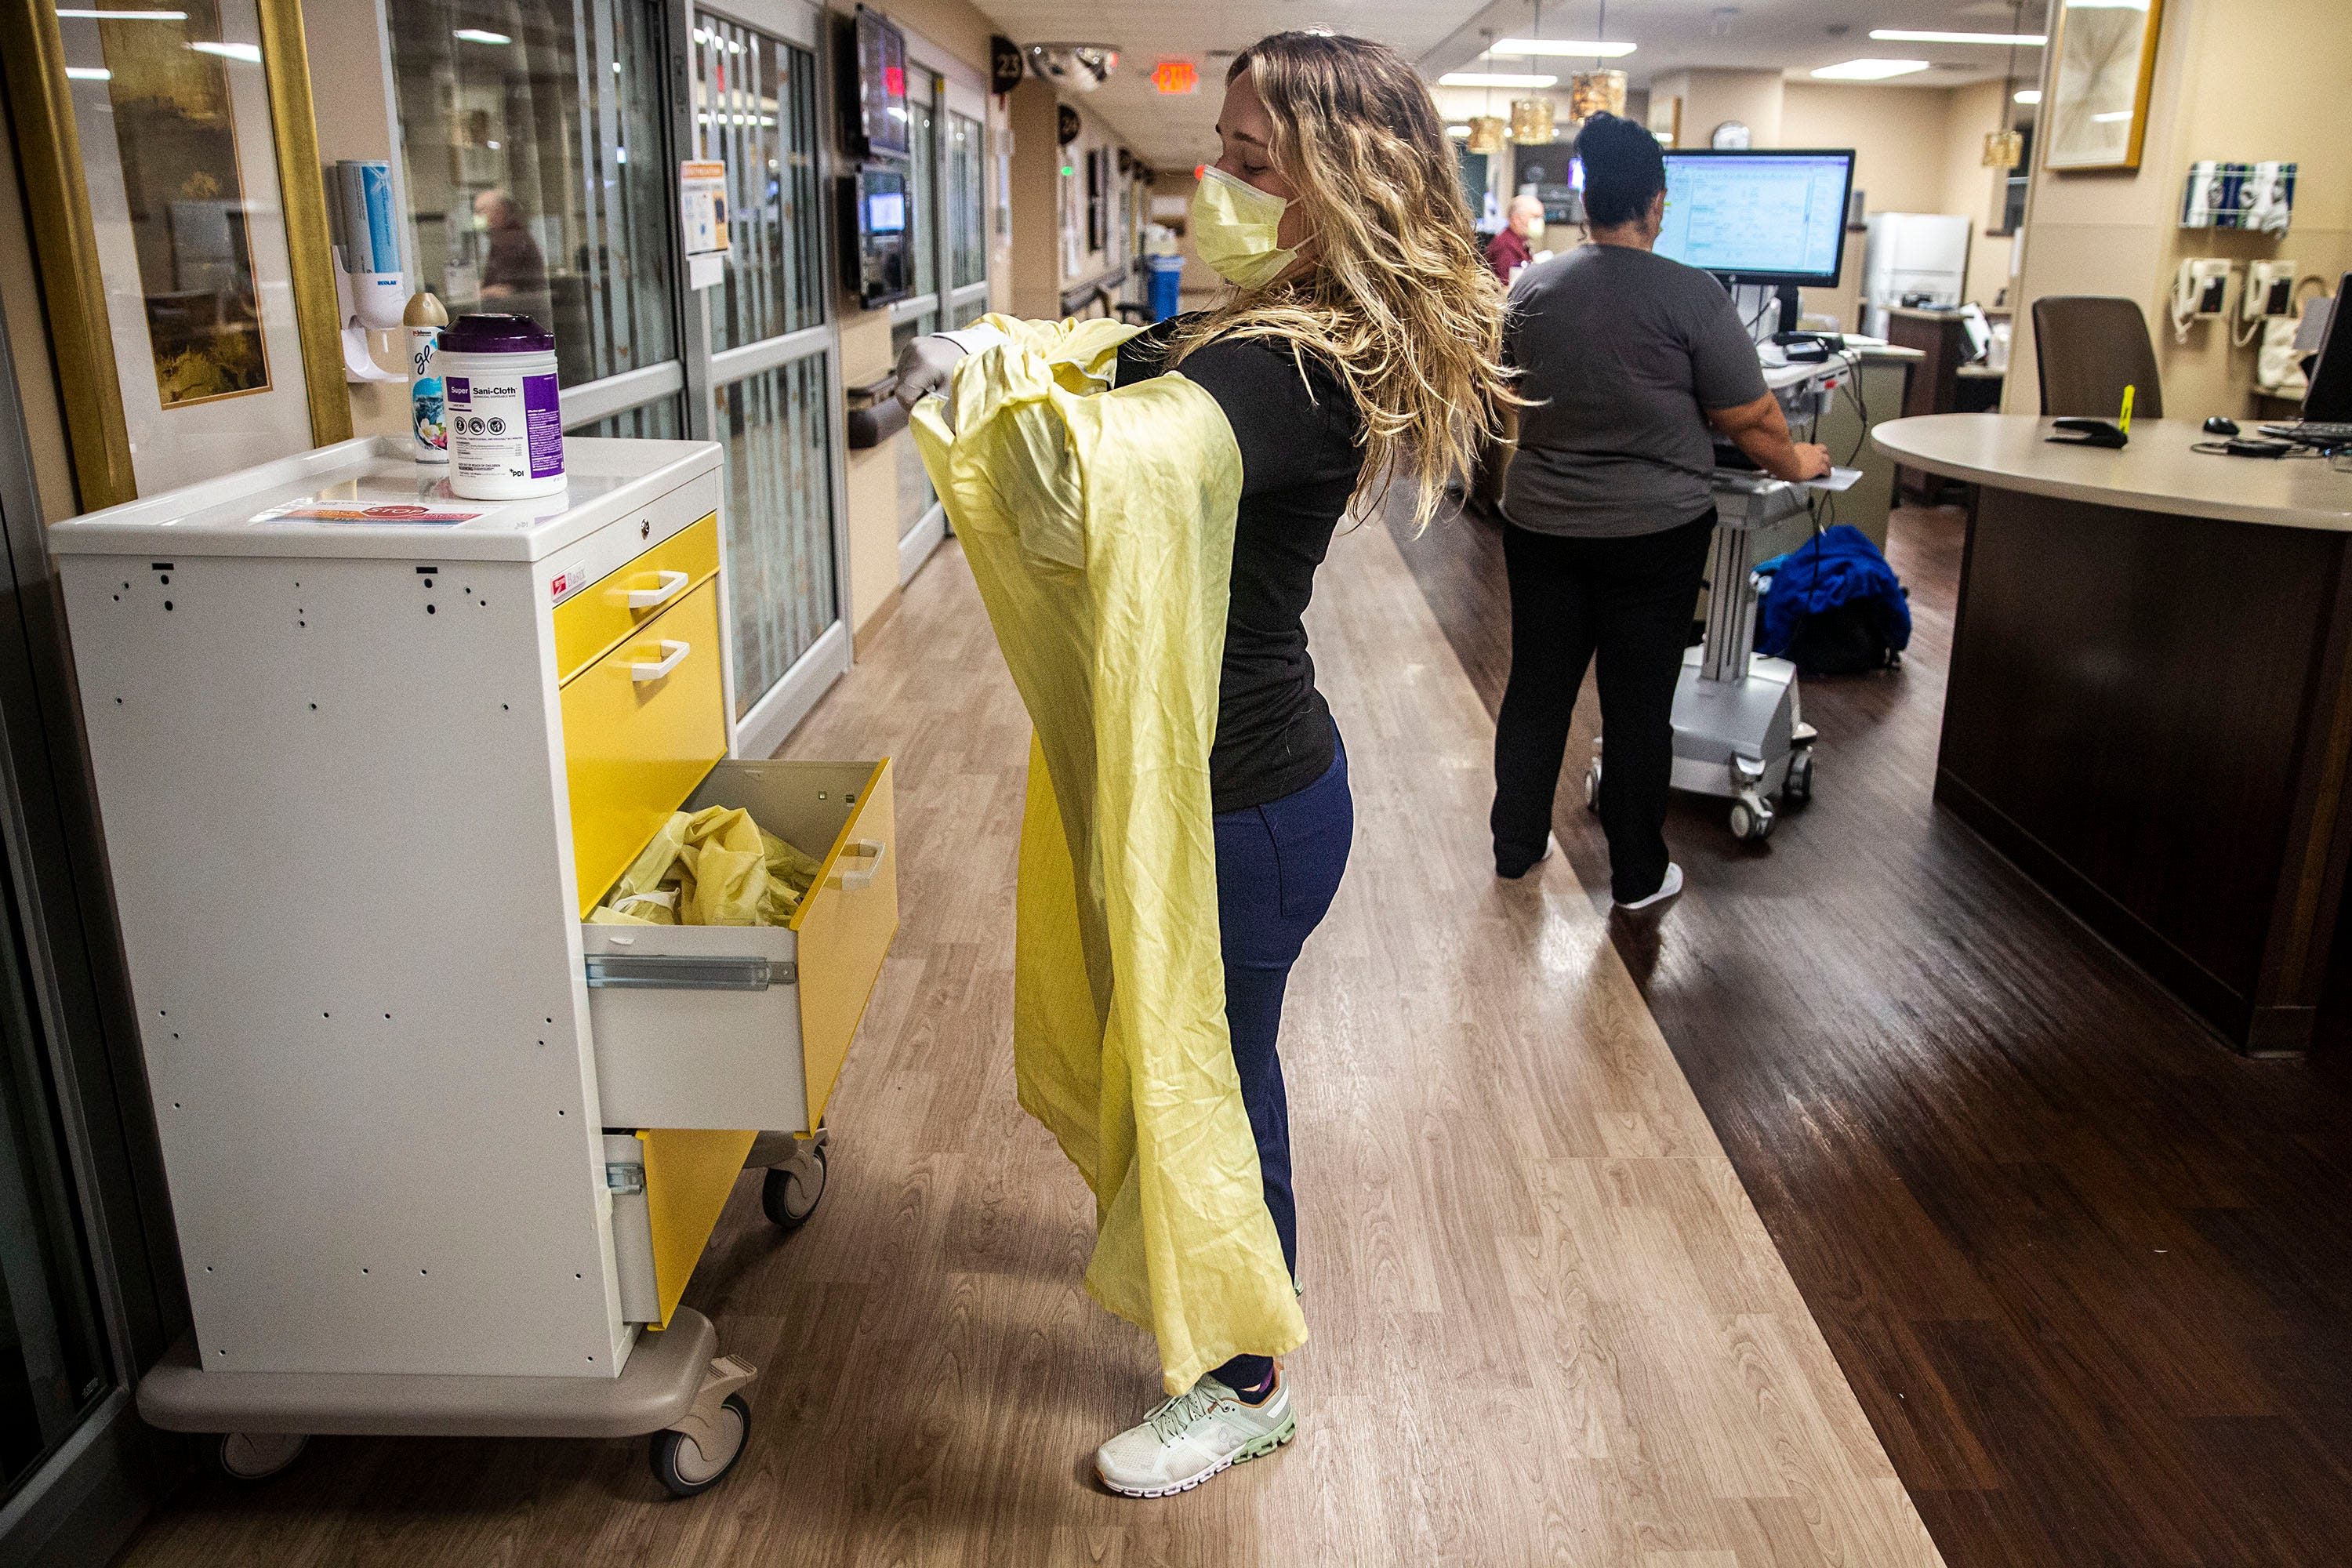 Stephanie Biggins, a registered nurse in the Iowa Methodist Medical Center emergency department, pulls on gown, gloves and a second mask with eye protection, before aiding a patient, early Friday morning, Sep. 3, 2021, in Des Moines.